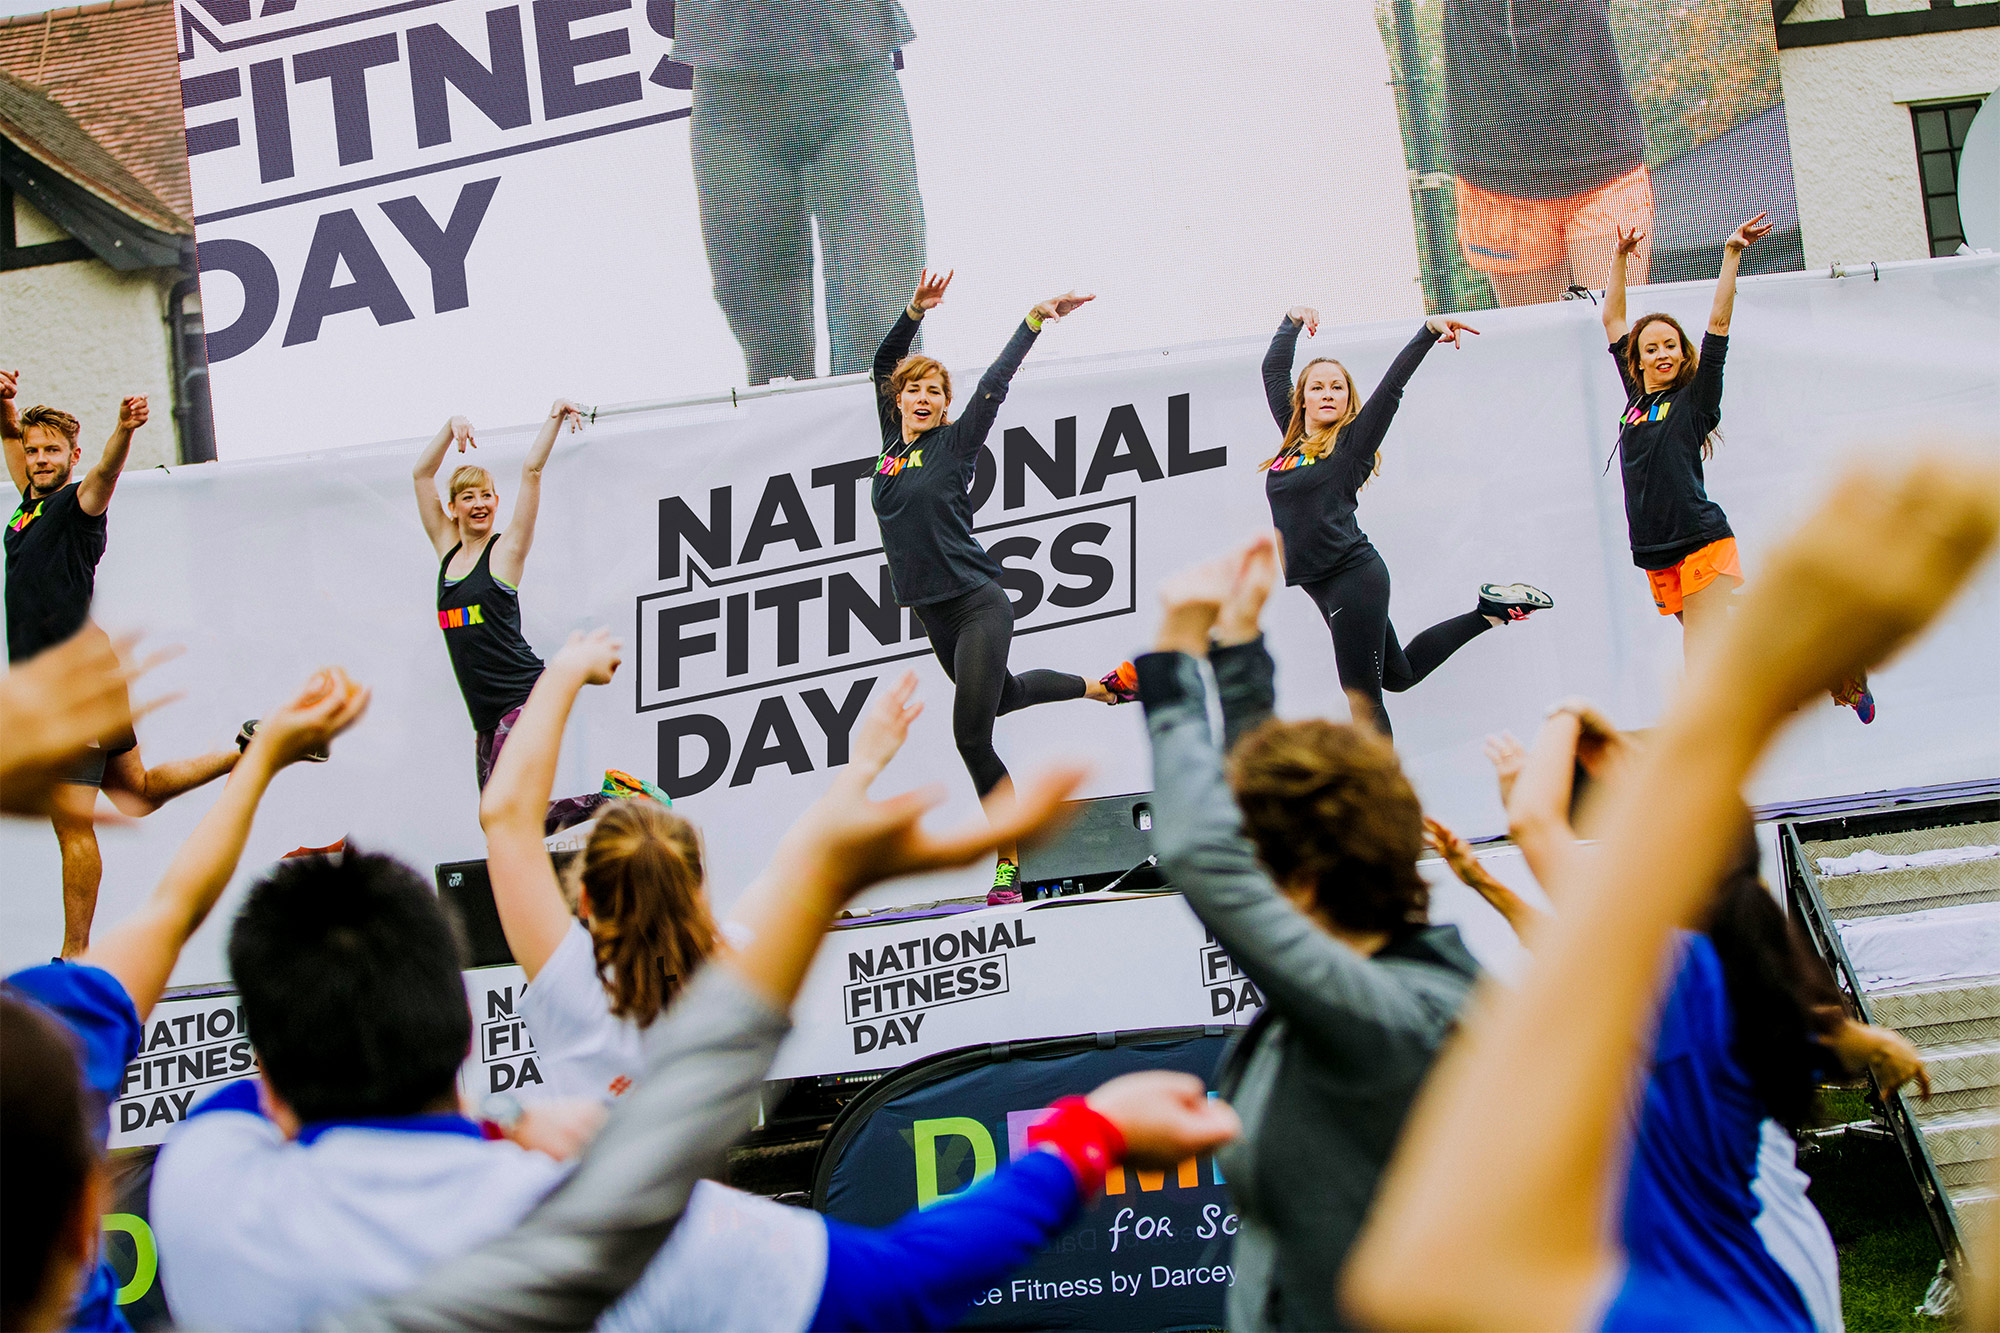 Dame Darcey Bussell to launch National Fitness Day with mass dance workout in London's Square Mile